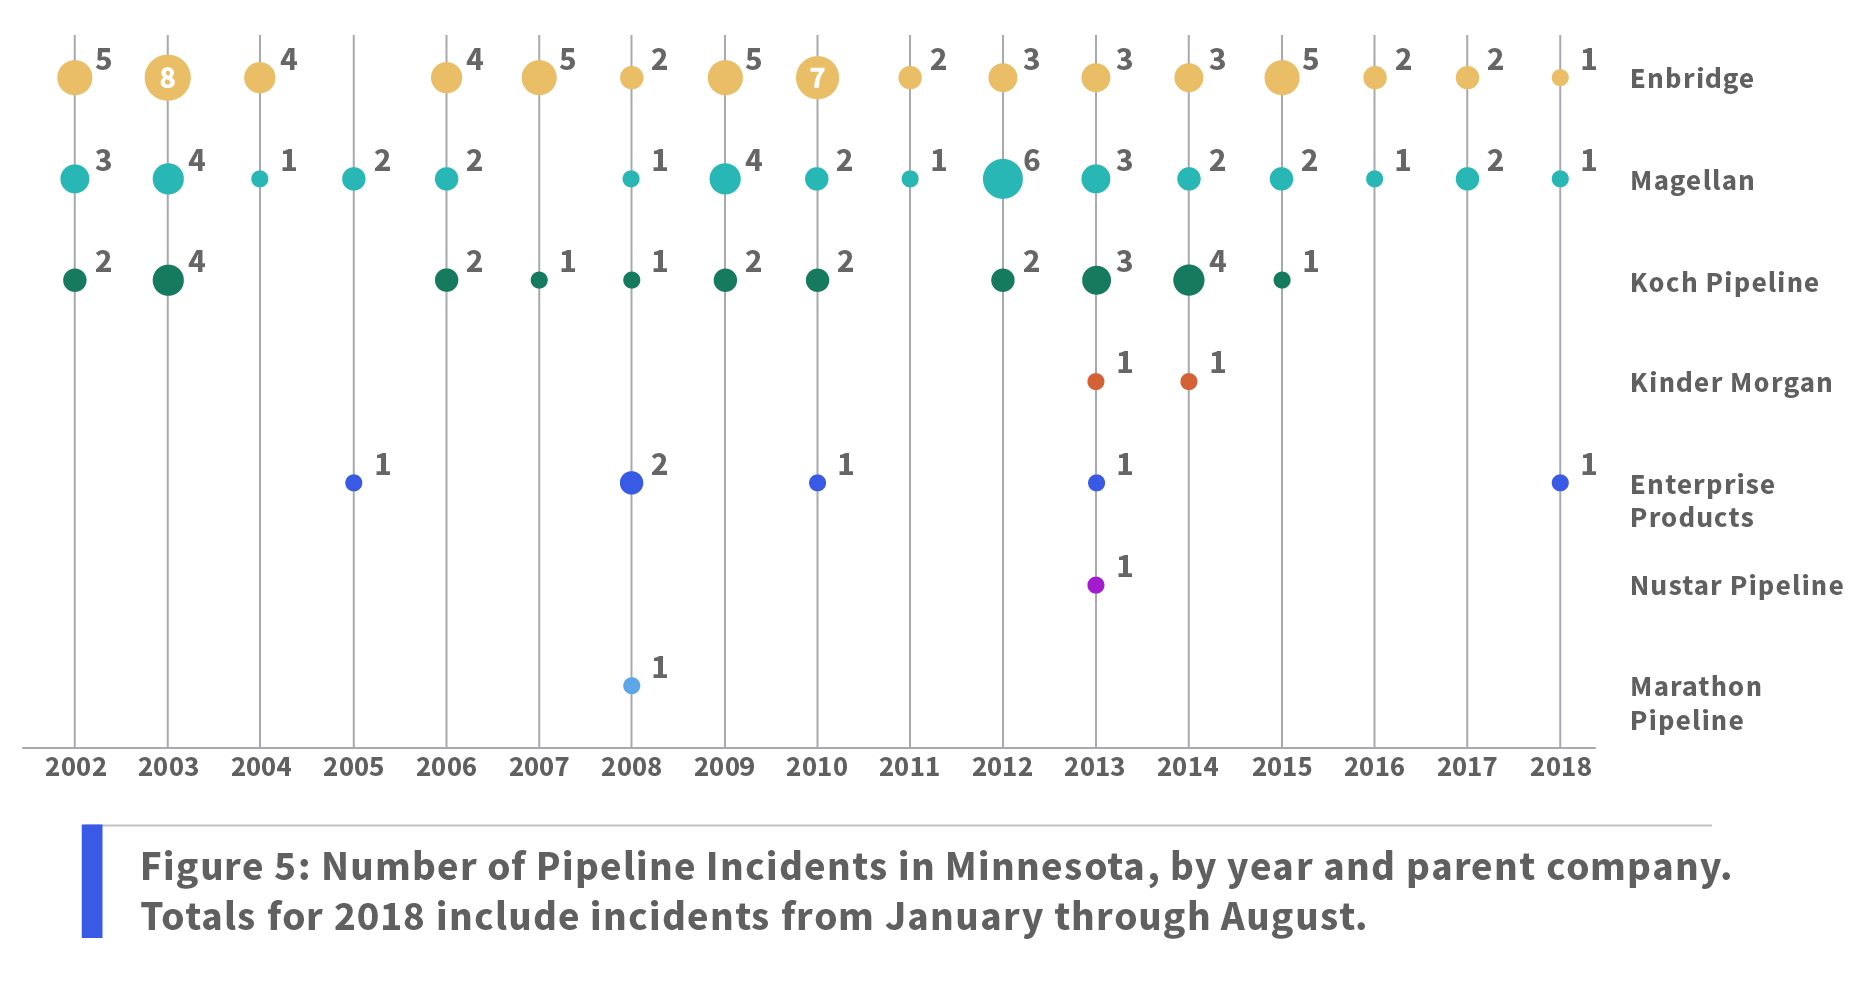 Figure 5: Number of Pipeline Incidents in Minnesota, by year and parent company. Totals for 2018 include incidents from January through August.